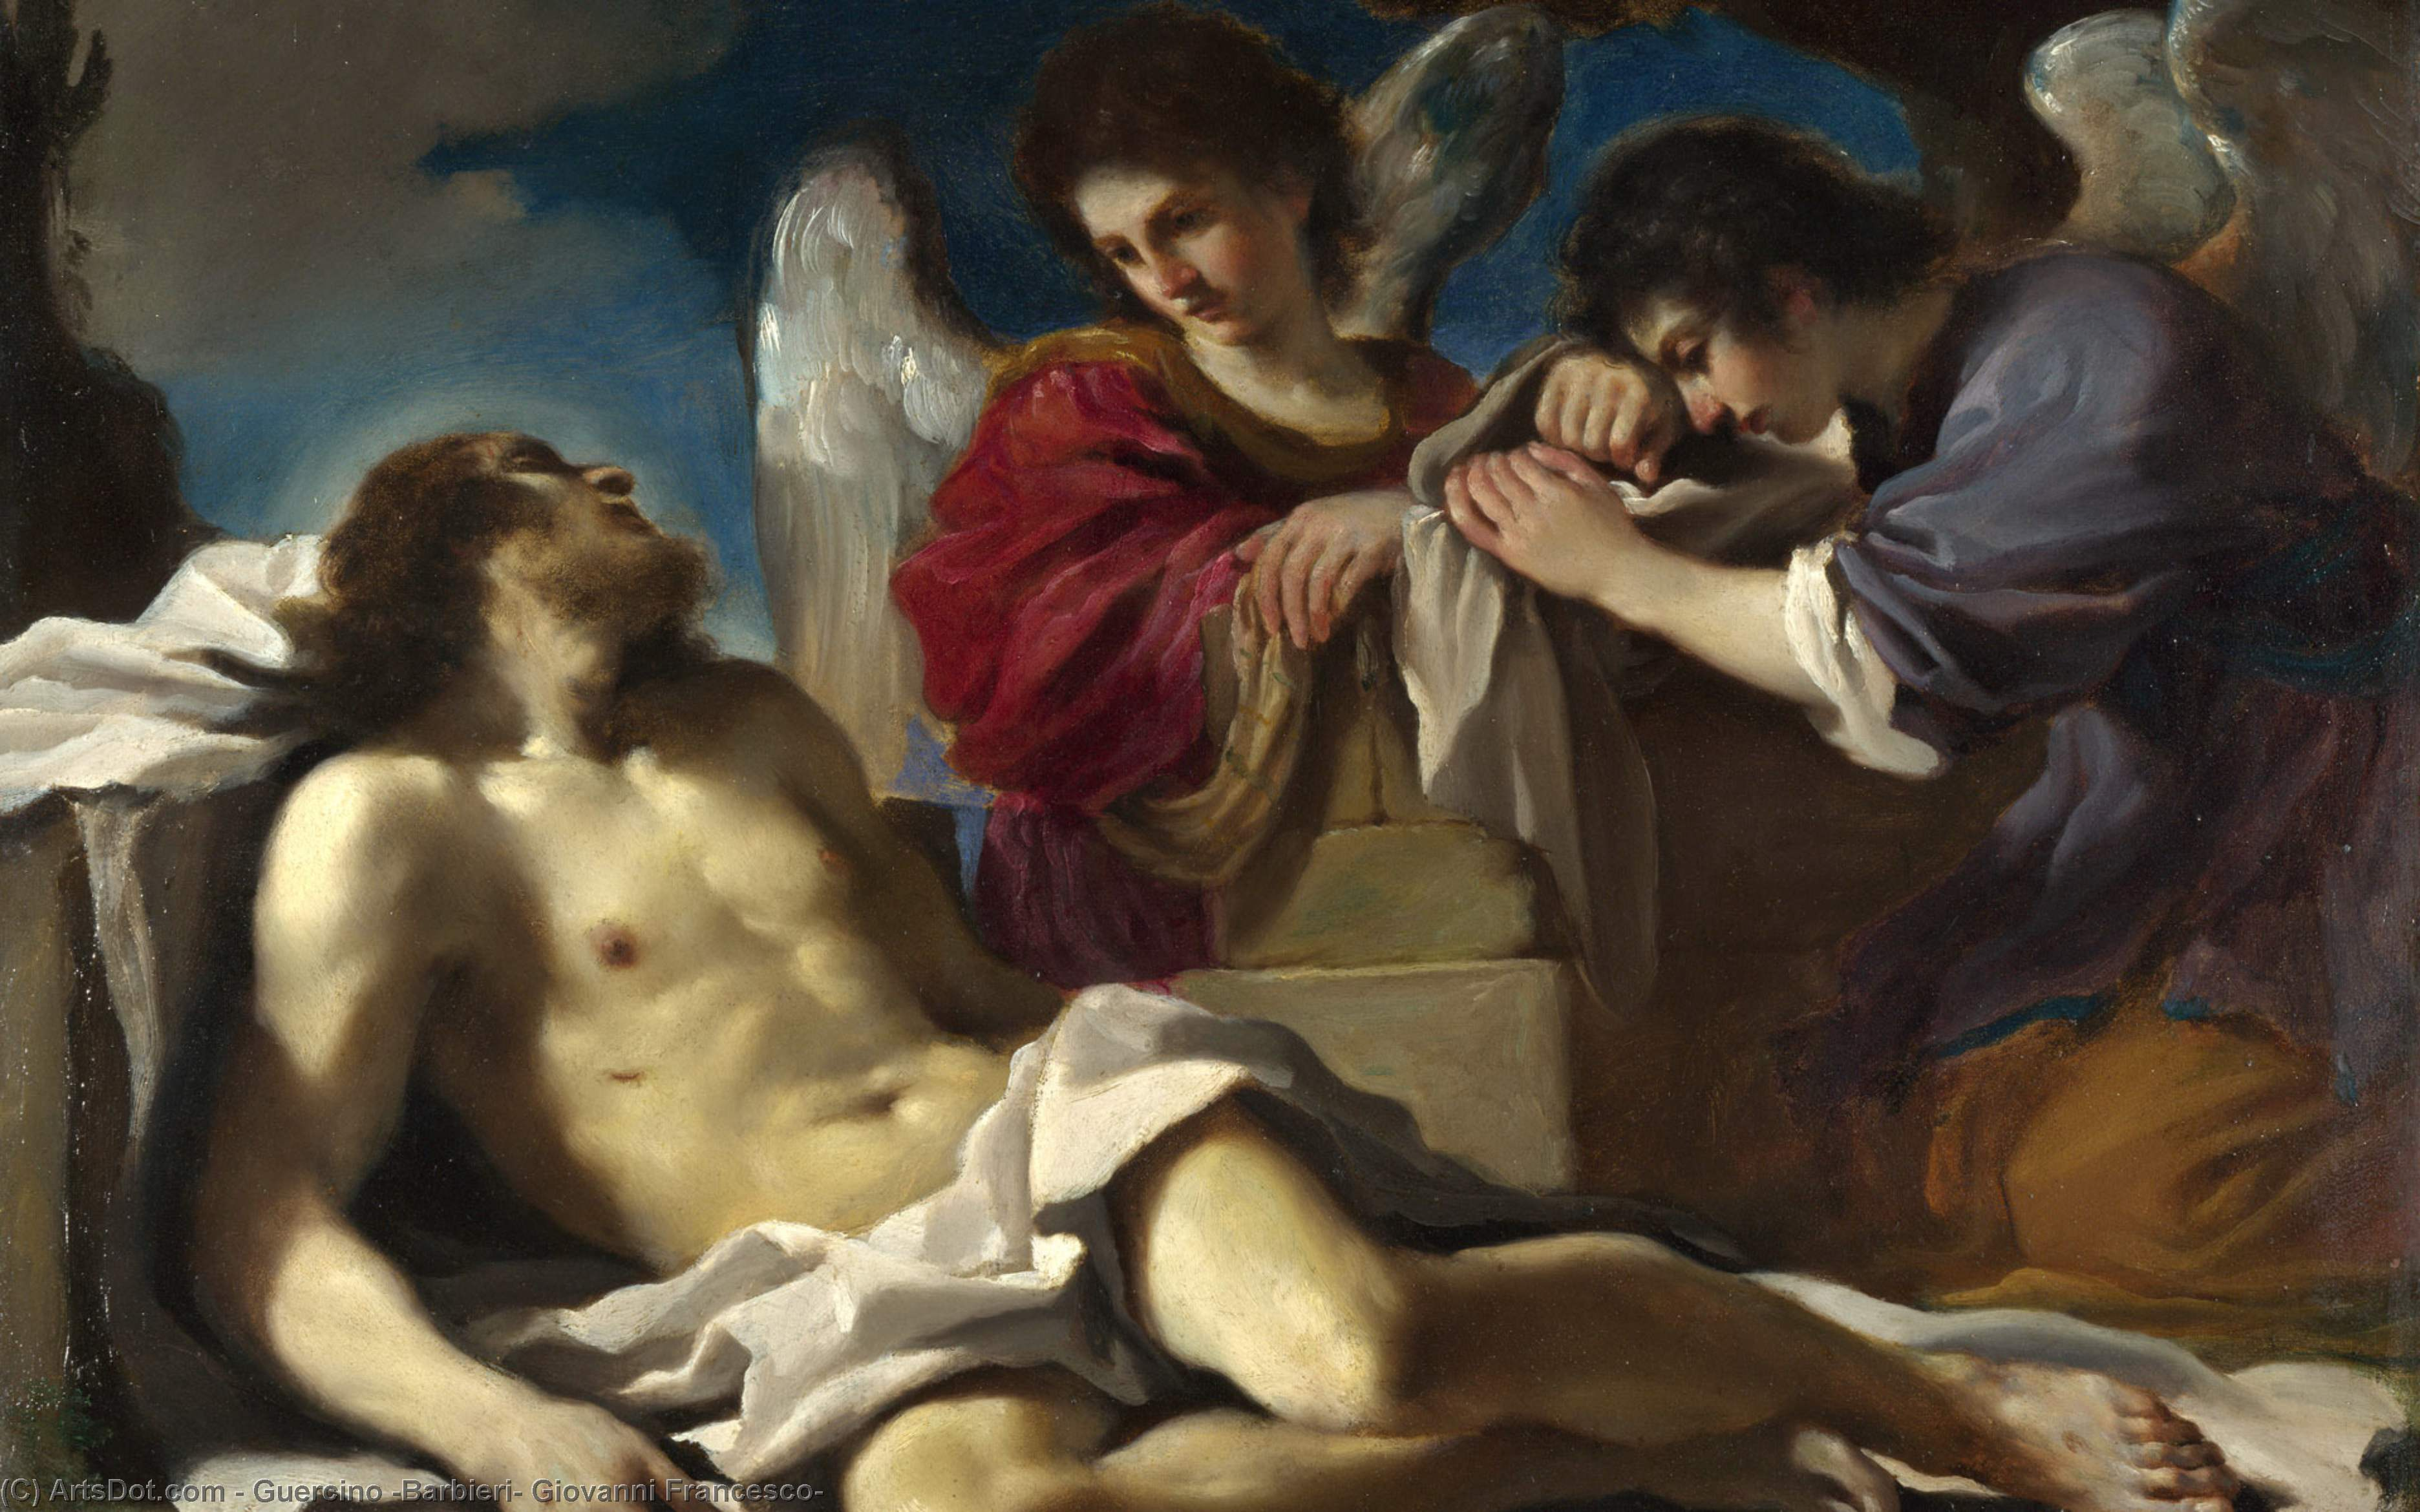 The Dead Christ mourned by Two Angels, Oil by Guercino (Barbieri, Giovanni Francesco) (1591-1666, Italy)